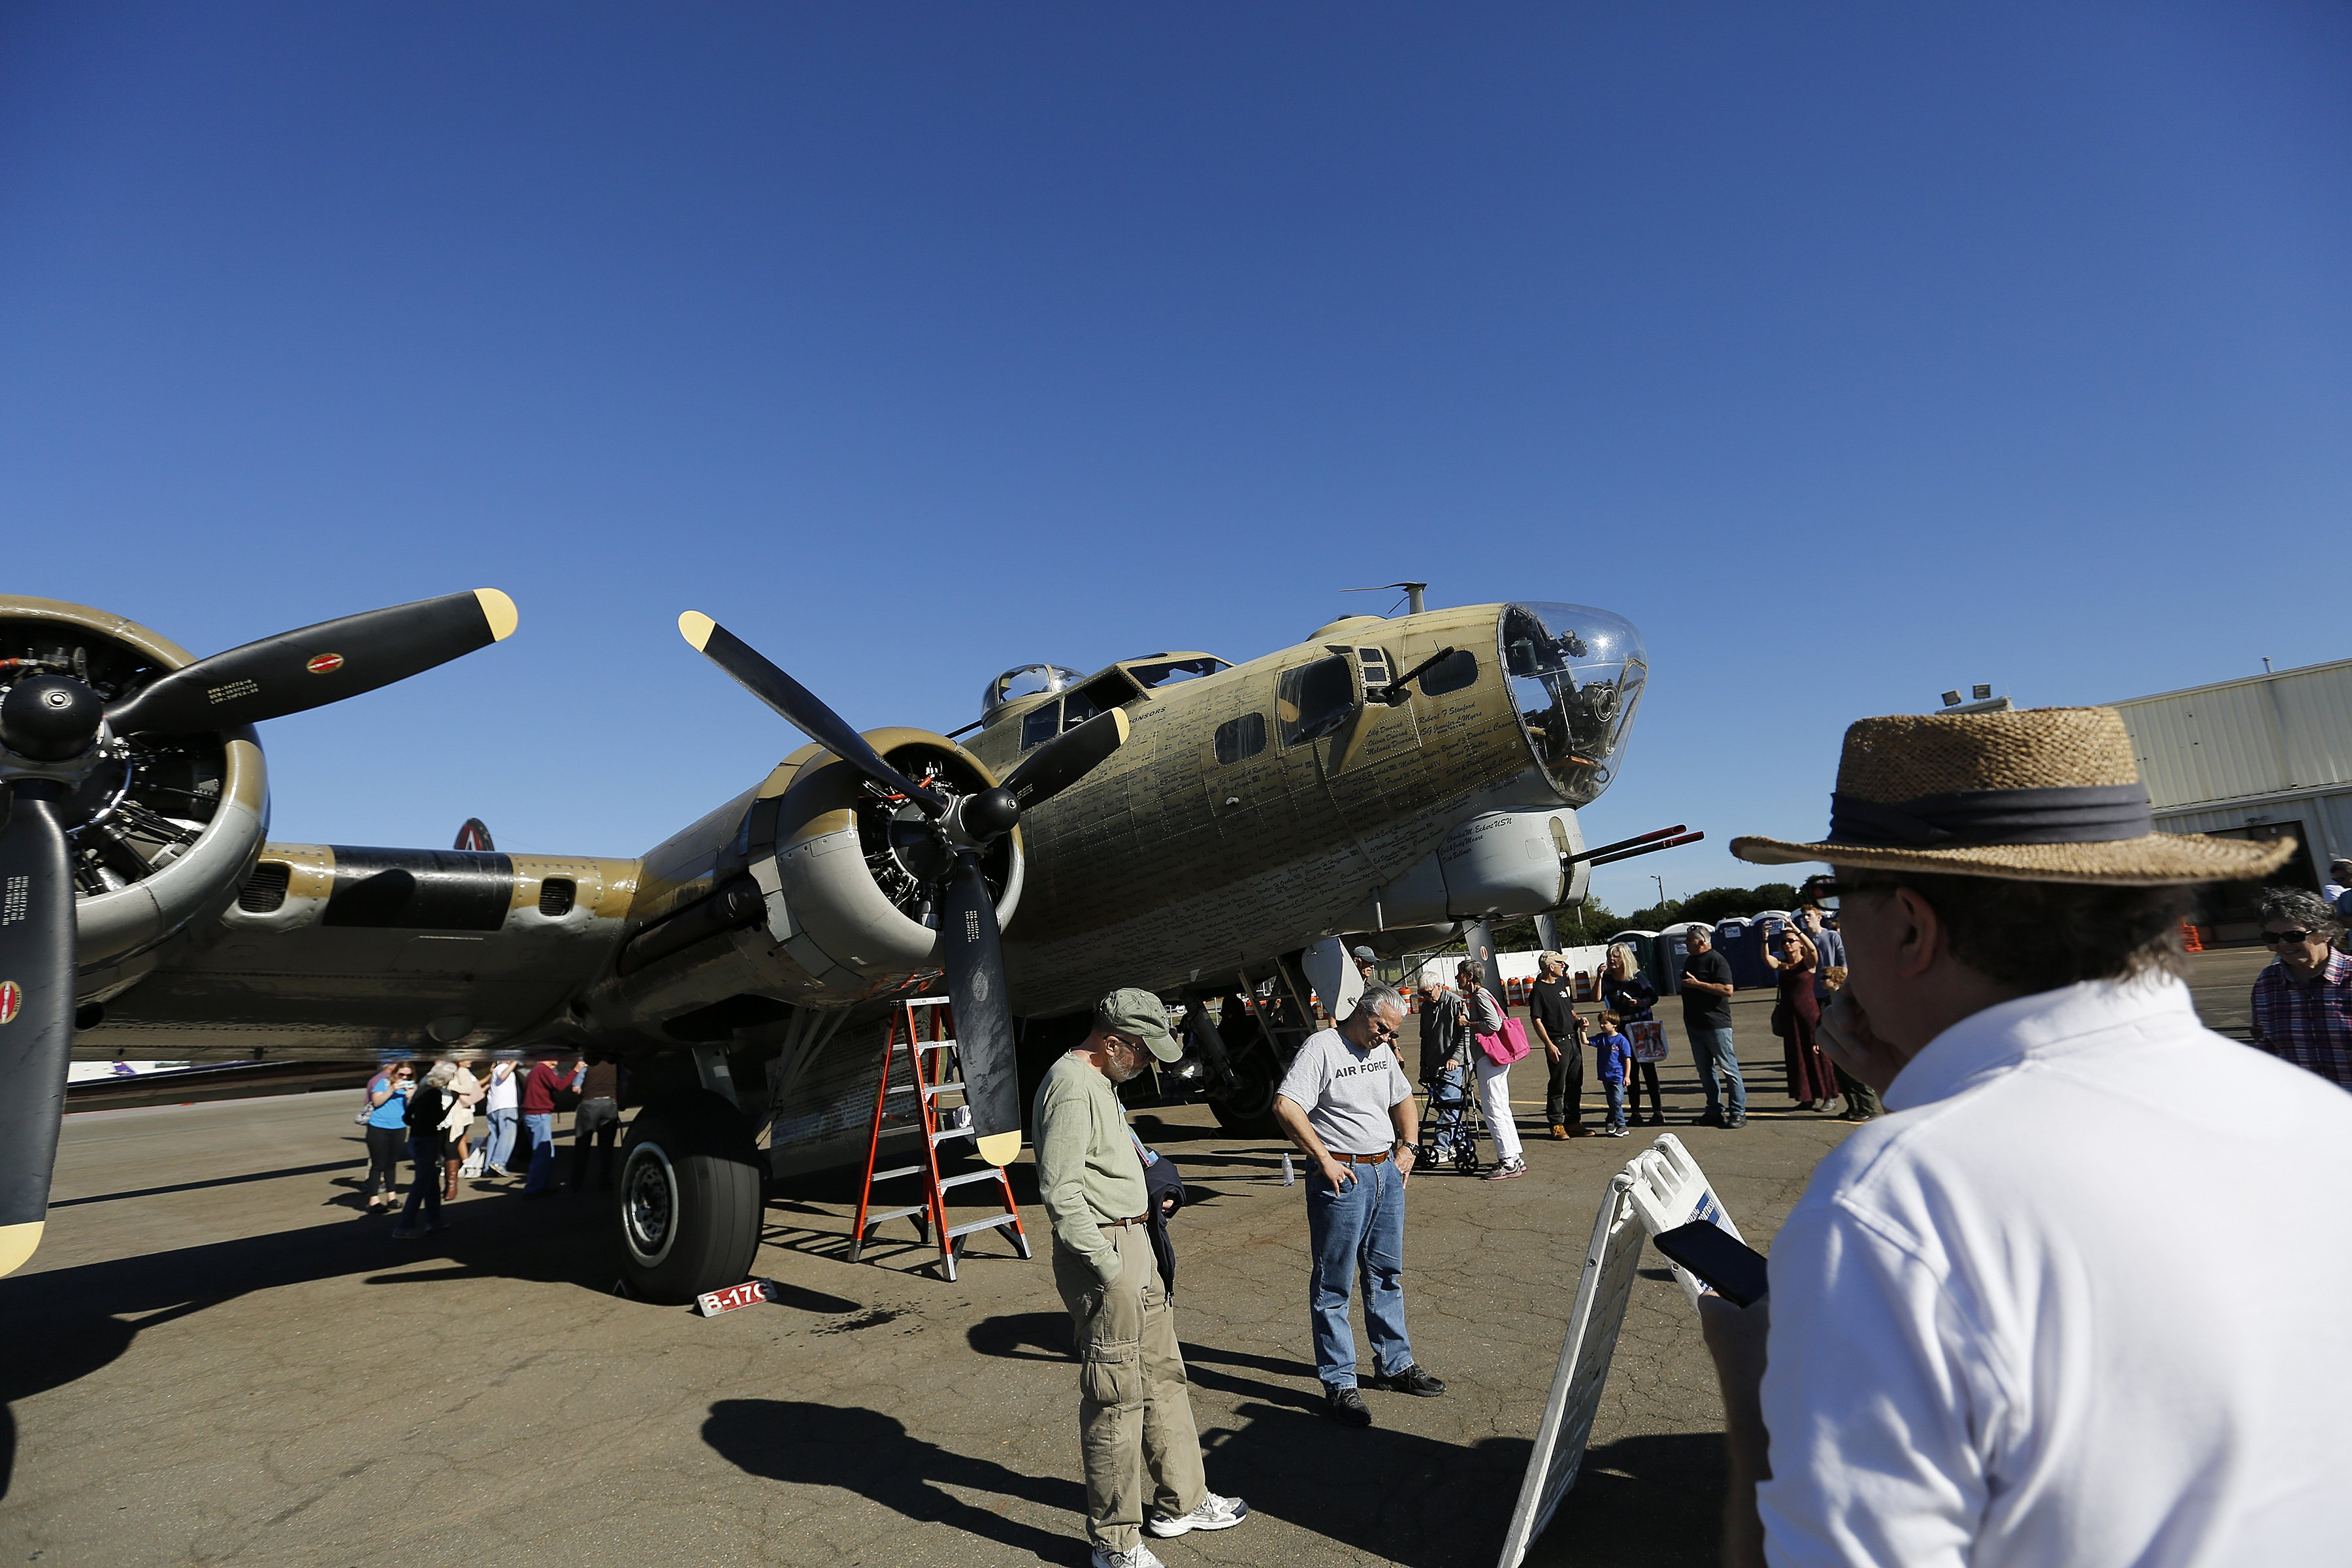 People examine a B-17 Flying Fortress during the Wings of Freedom Tour at Raleigh-Durham International Airport, October 19, 2017. Hosted by the Collings Foundation, Wings of Freedom visits more than 100 cities a year to show off working pieces of American war history as well as to educate people about the veterans of WWII. The tour will be in Burlington, NC until 12 pm on Oct. 25 and then move to Statesville, NC through Oct. 27. (Eamon Queeney / North State Journal)